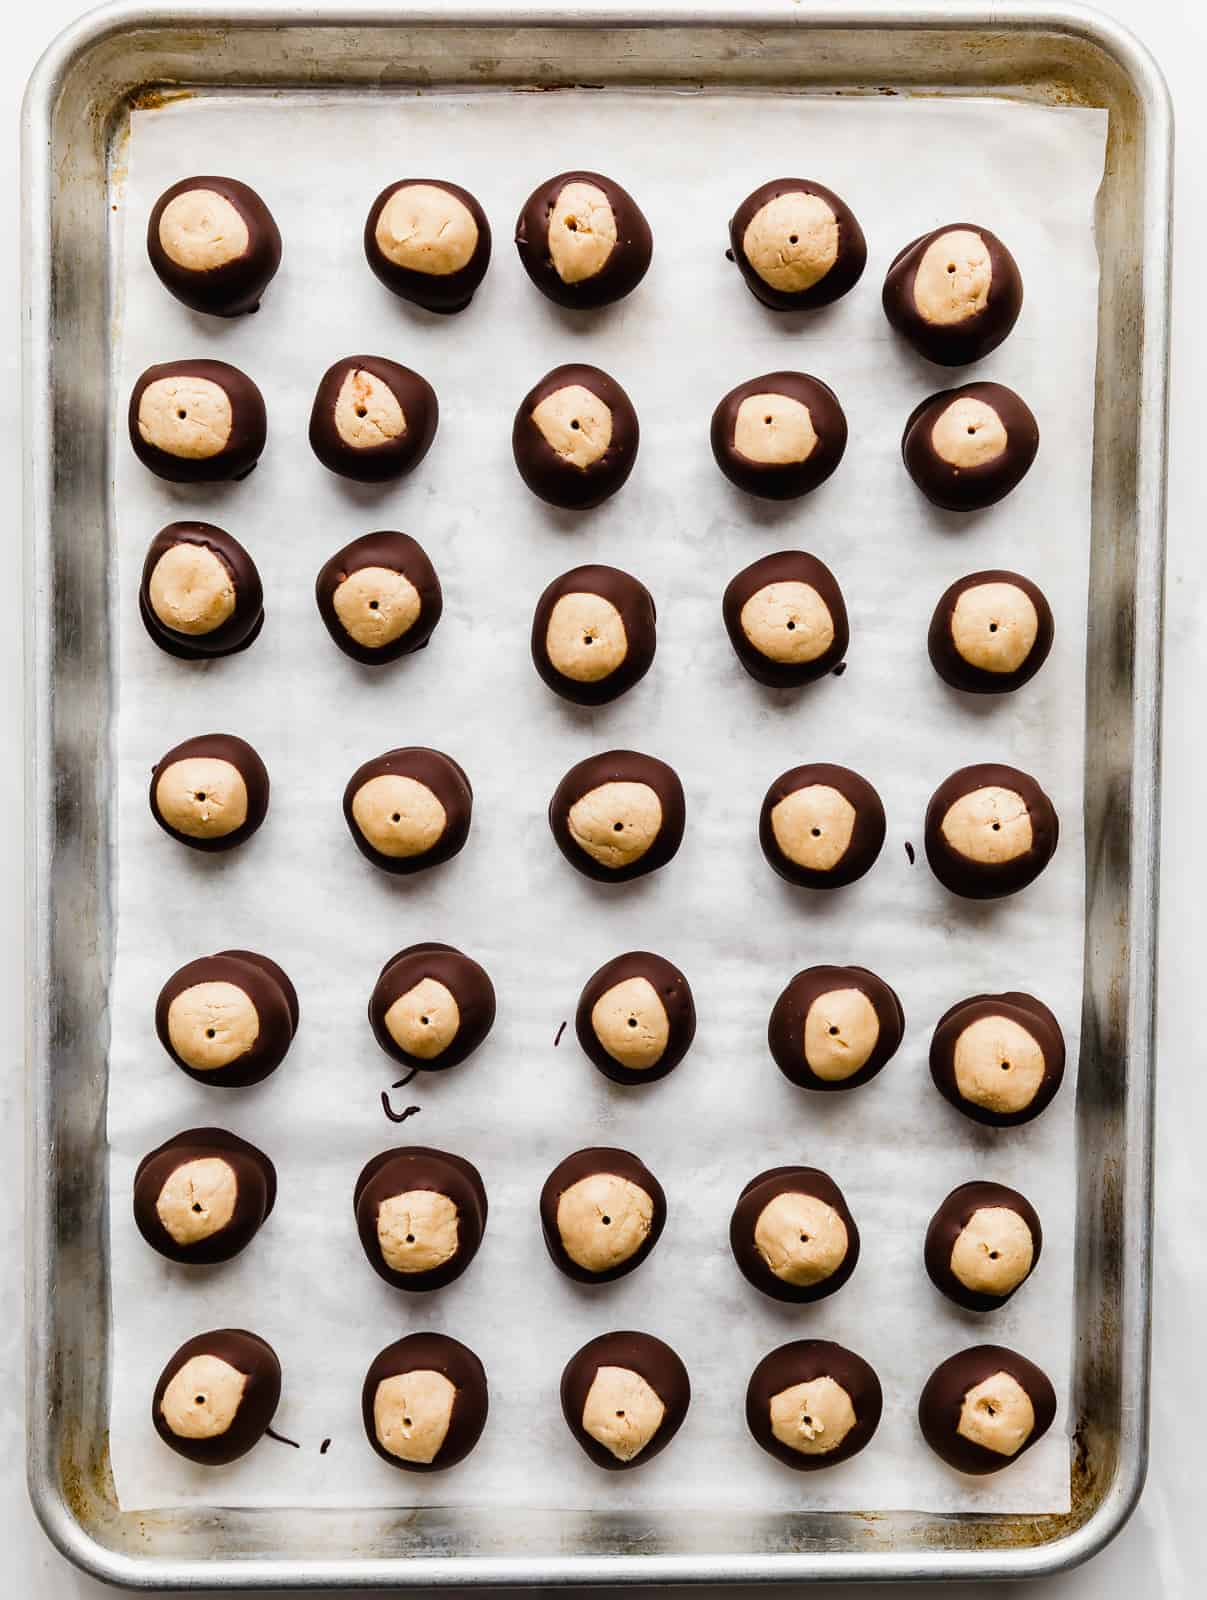 Chocolate dipped buckeyes on a baking sheet.